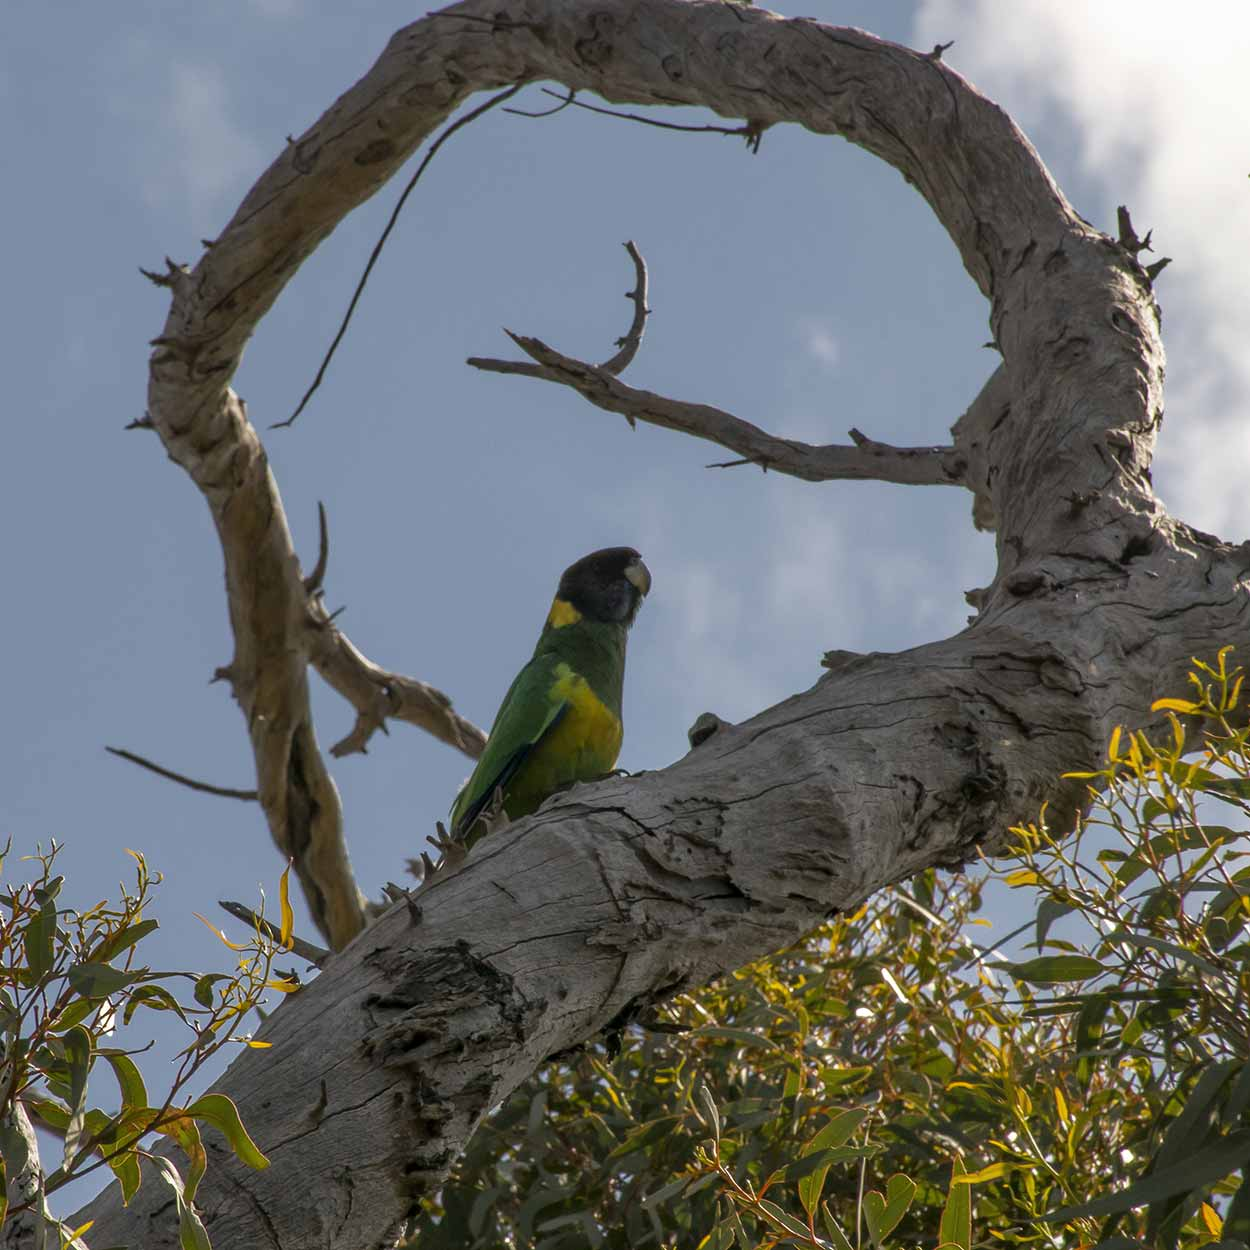 Australian Ringneck Parrot on the Lewis Road Walk, Mundy Regional Park, Perth, Western Australia